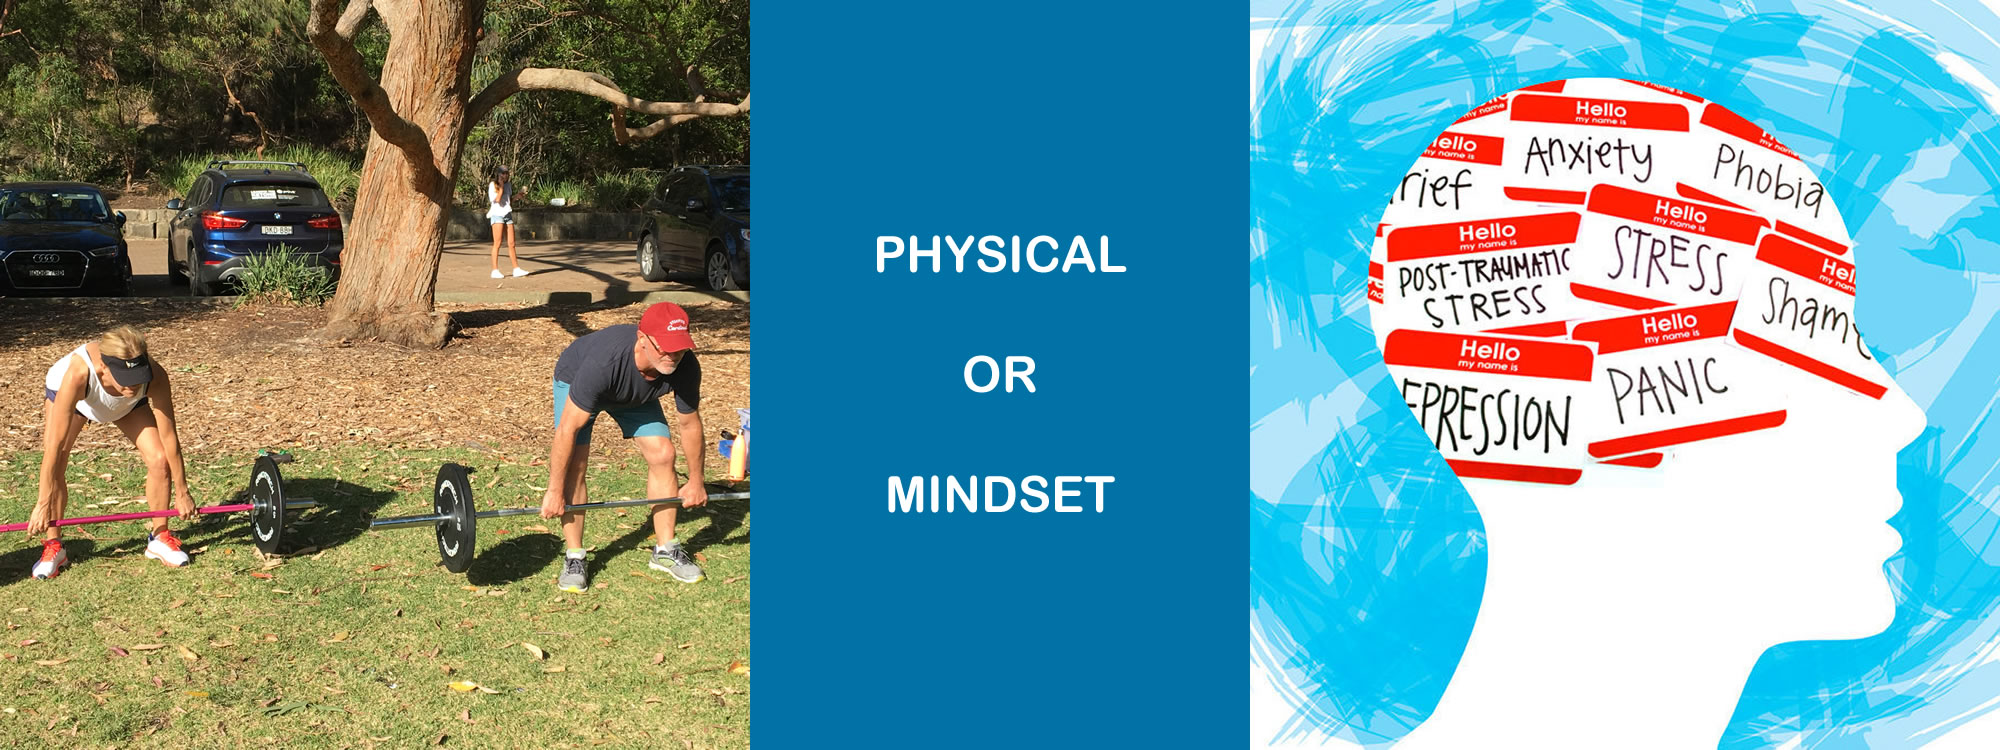 Physical or Mindset Focus